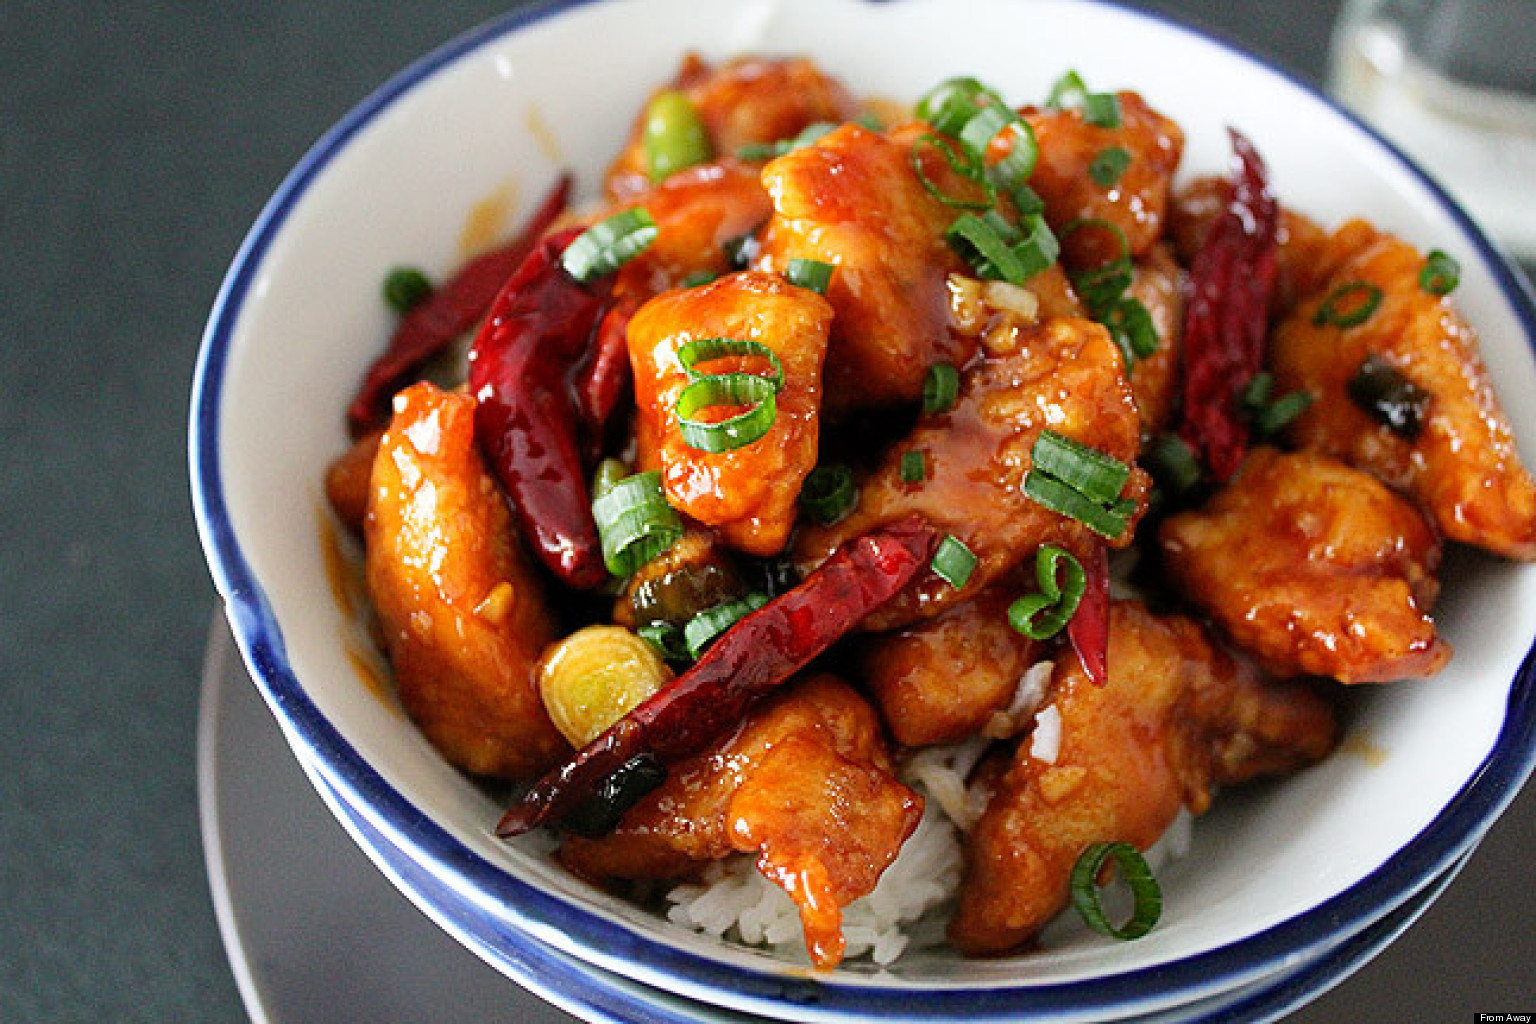 Chinese Takeout Recipes To Make At Home PHOTOS